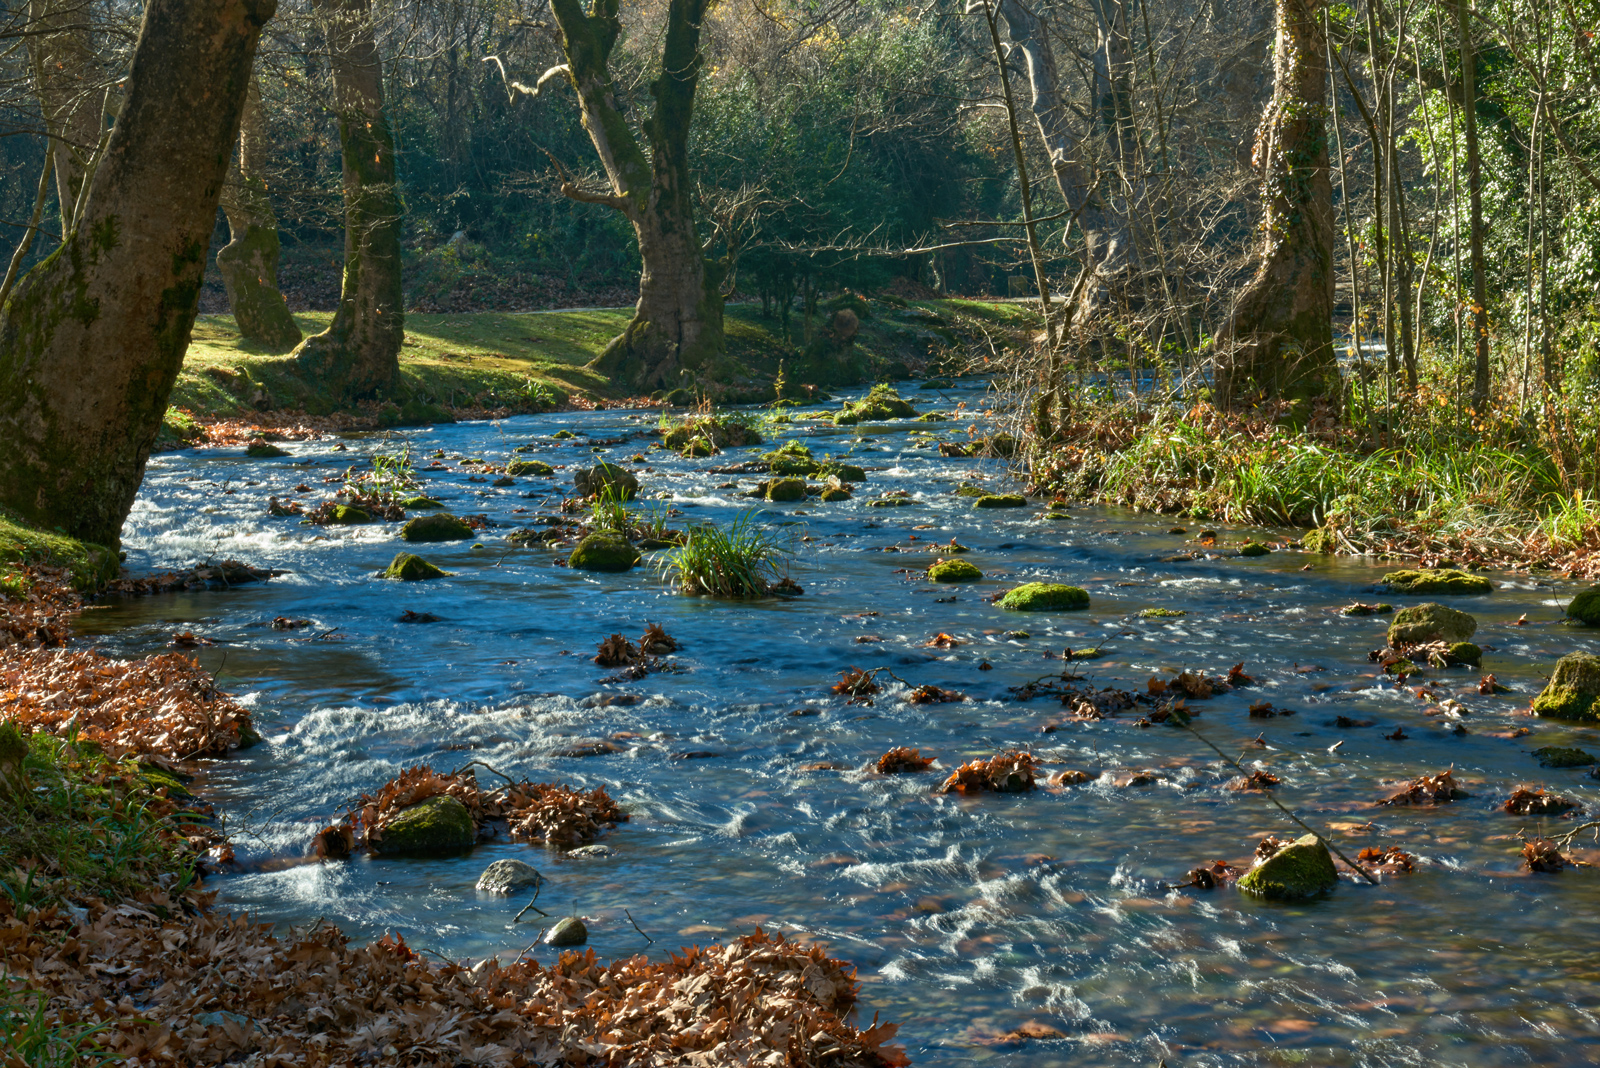 The Arapitsa River in Saint Nicholas' Grove Naoussa in Autumn